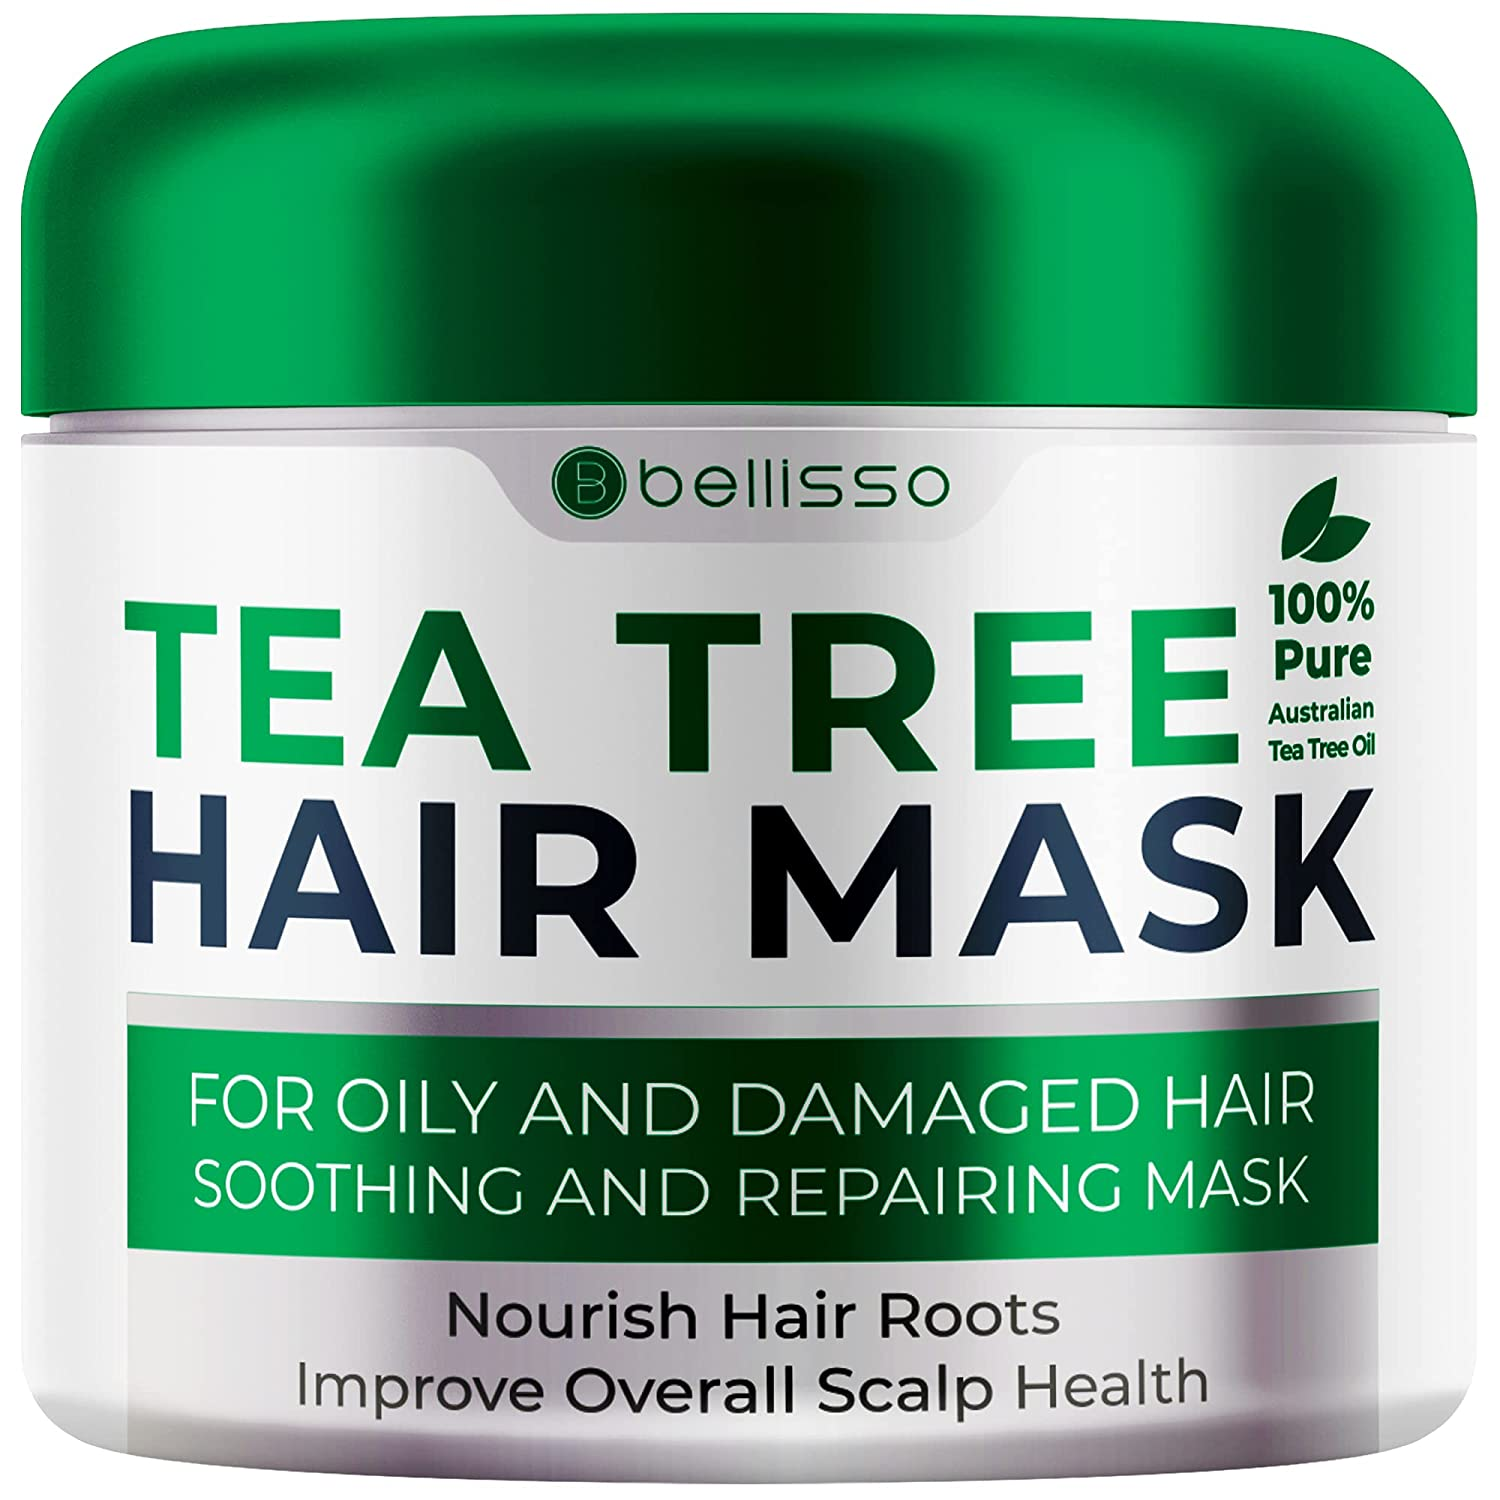 Bellisso Tea Tree Oil Hair Mask for Dry - Selling Houston Mall Damaged Products